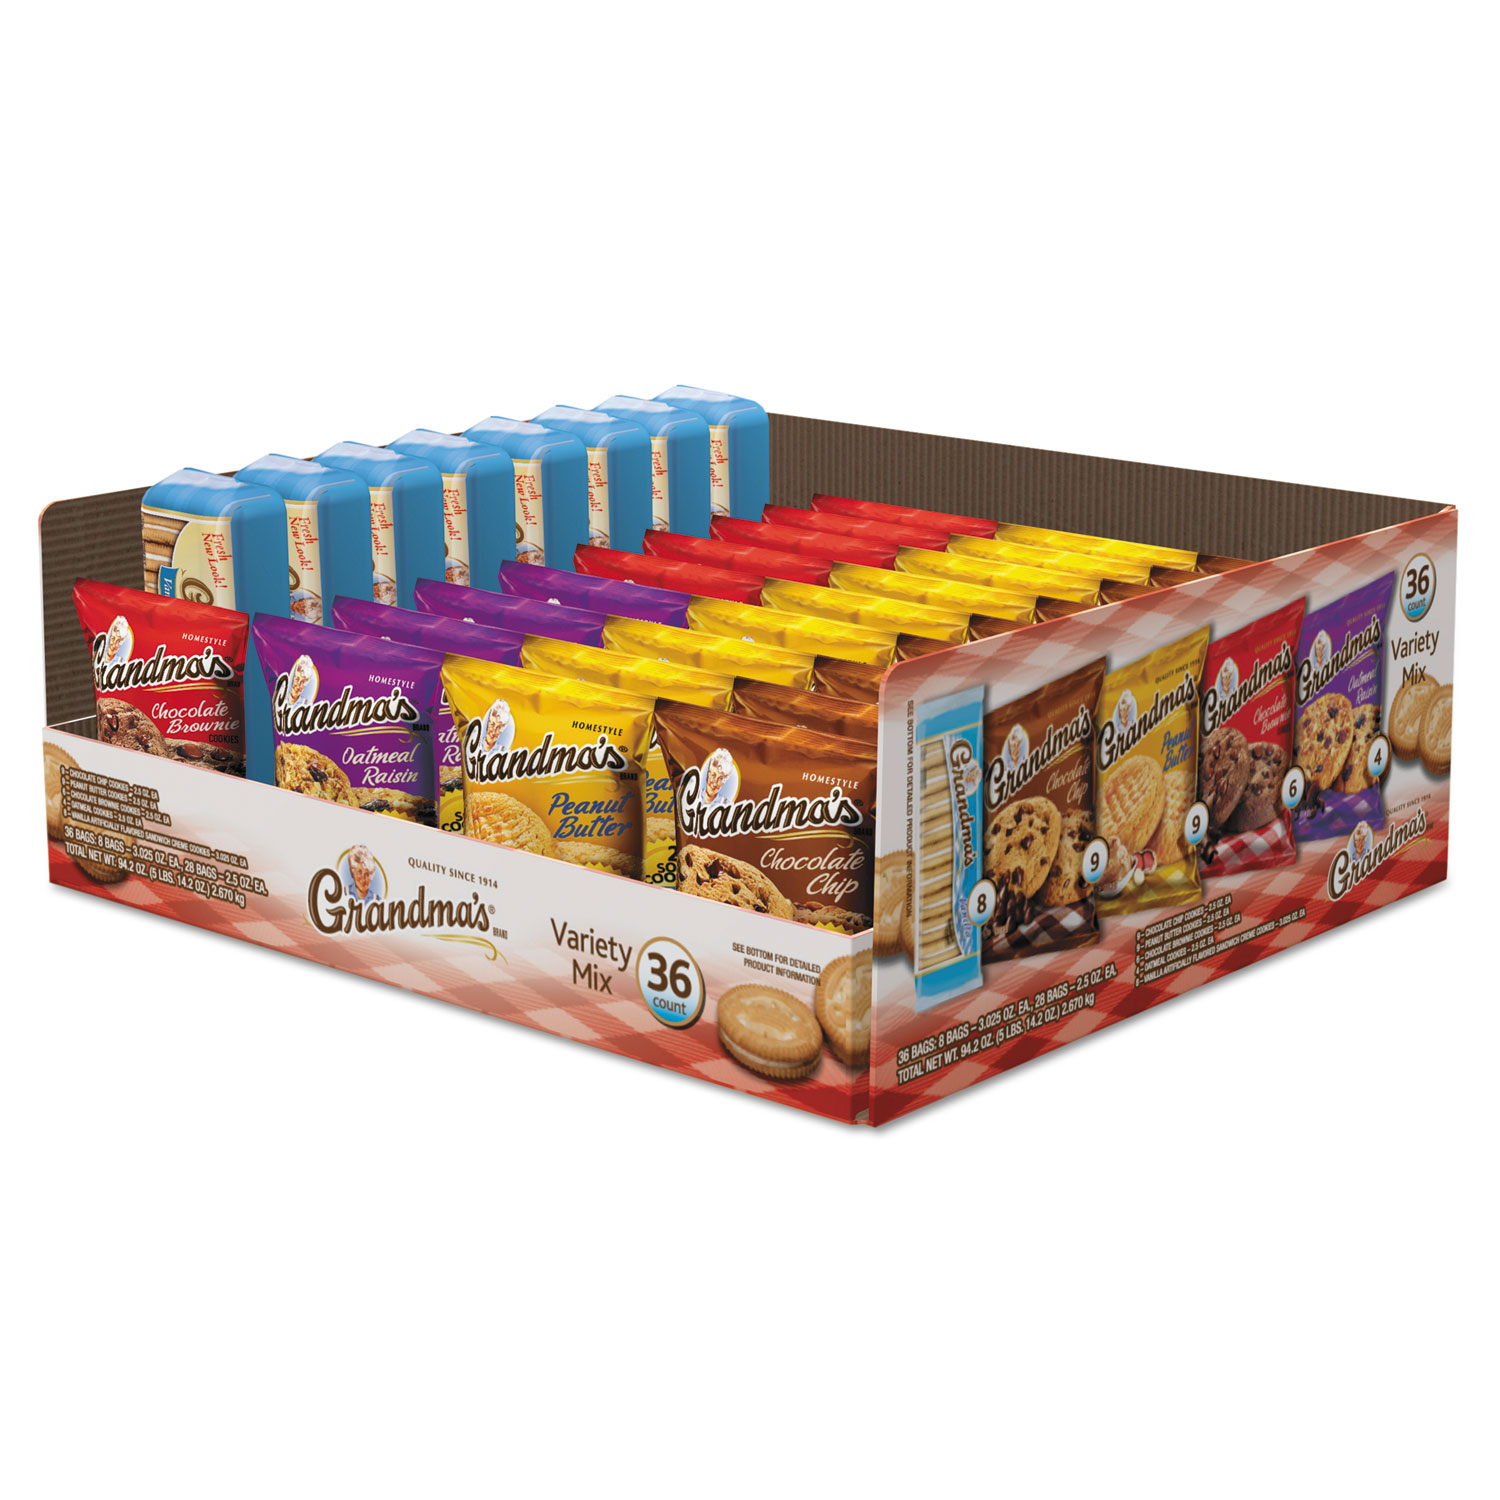 Cookies Variety Tray 36 Count, 2.5 oz Packs